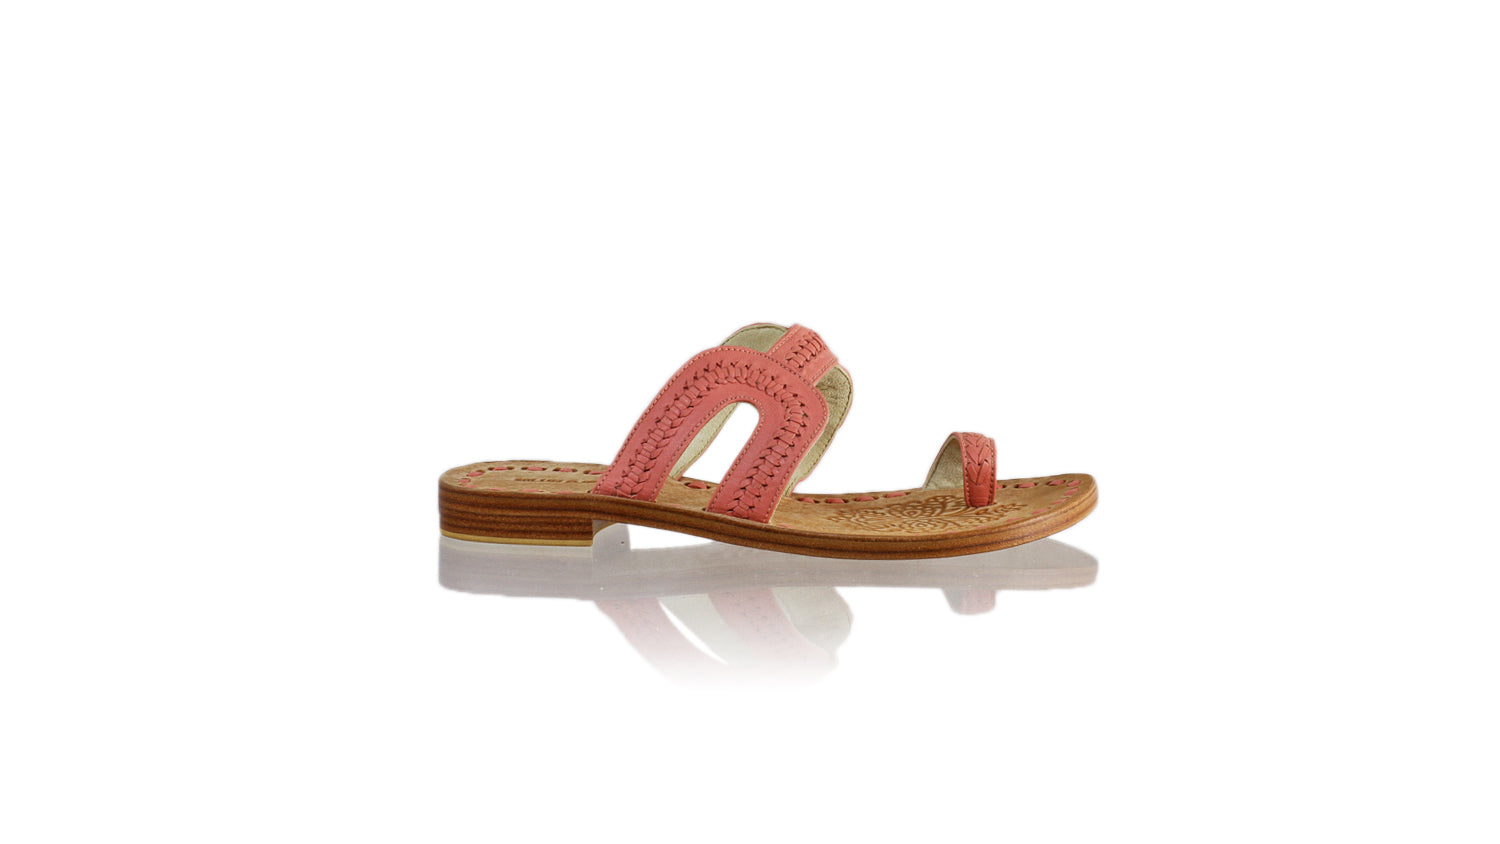 Leather-shoes-Andy 20mm Flat - Salmon Pink-sandals flat-NILUH DJELANTIK-NILUH DJELANTIK